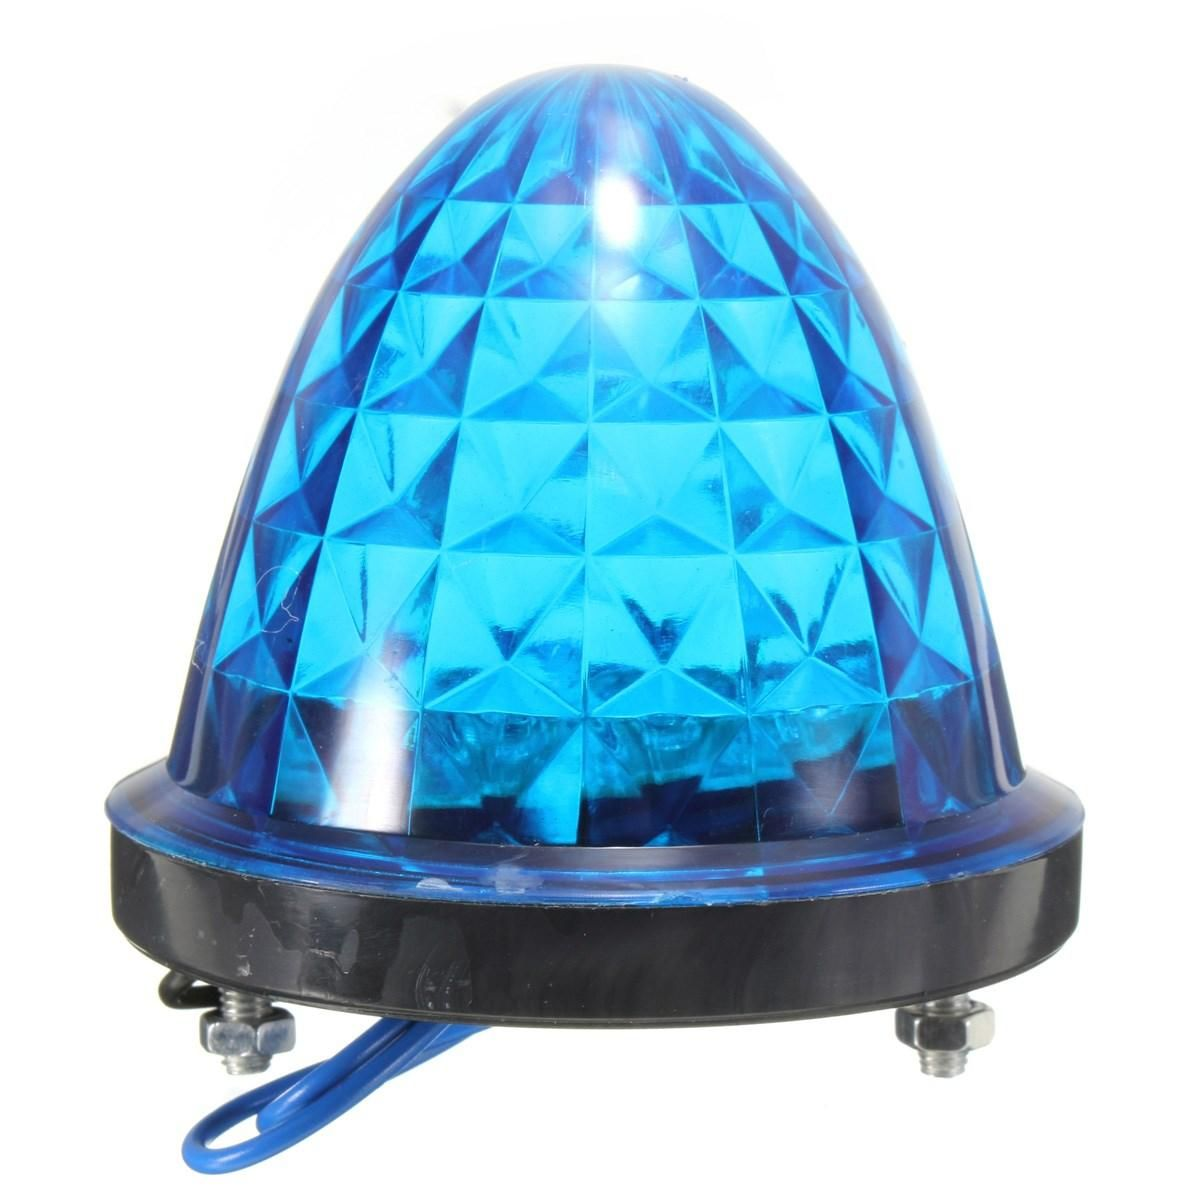 24v 14 Led Universal Side Marker Trailer Light Lamp Indicator Truck Lorry Trailer Blue Van Car New 7 99 Blue Vans Van Car Lamp Light